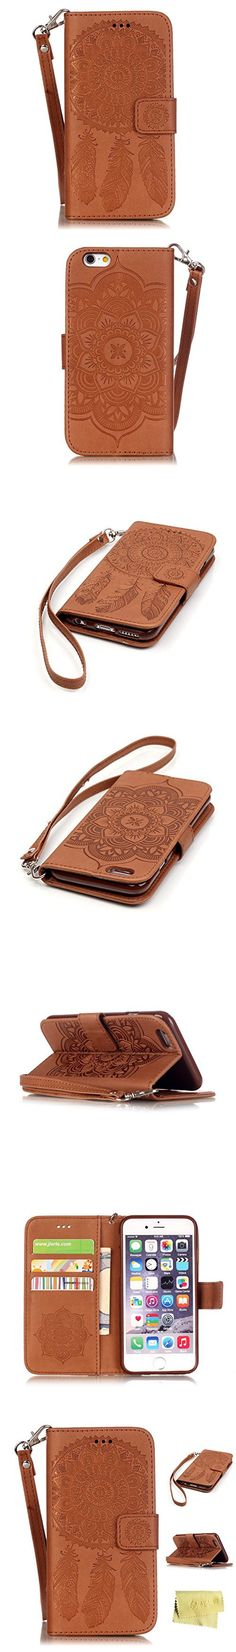 IPhone 6s Plus Case,iPhone 6s Plus Wallet Case,MT Mall(TM) for iPhone 6 6s Plus PU Leather Case[Hand Strap]Flip Folio Magnetic Design[Built in Credit Card Slots]with Dream Catcher Pattern